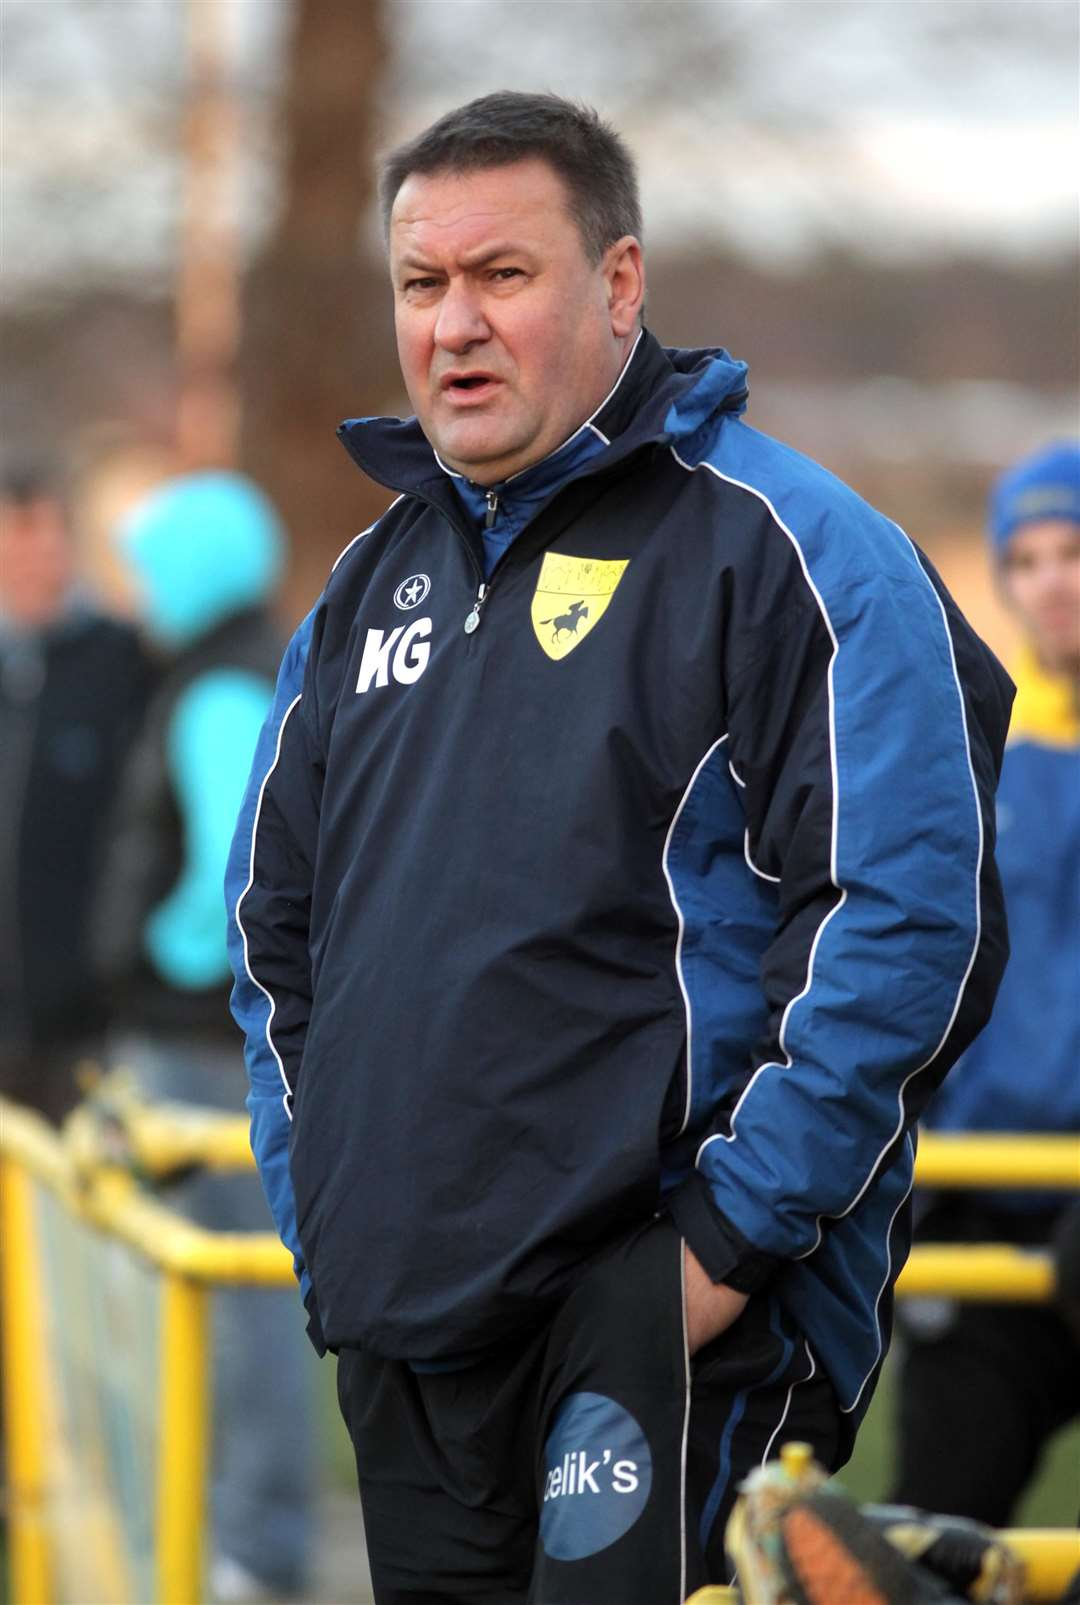 Newmarket Journal - November 2011..Newmarket Town manager, Kevin Grainger. (32728991)